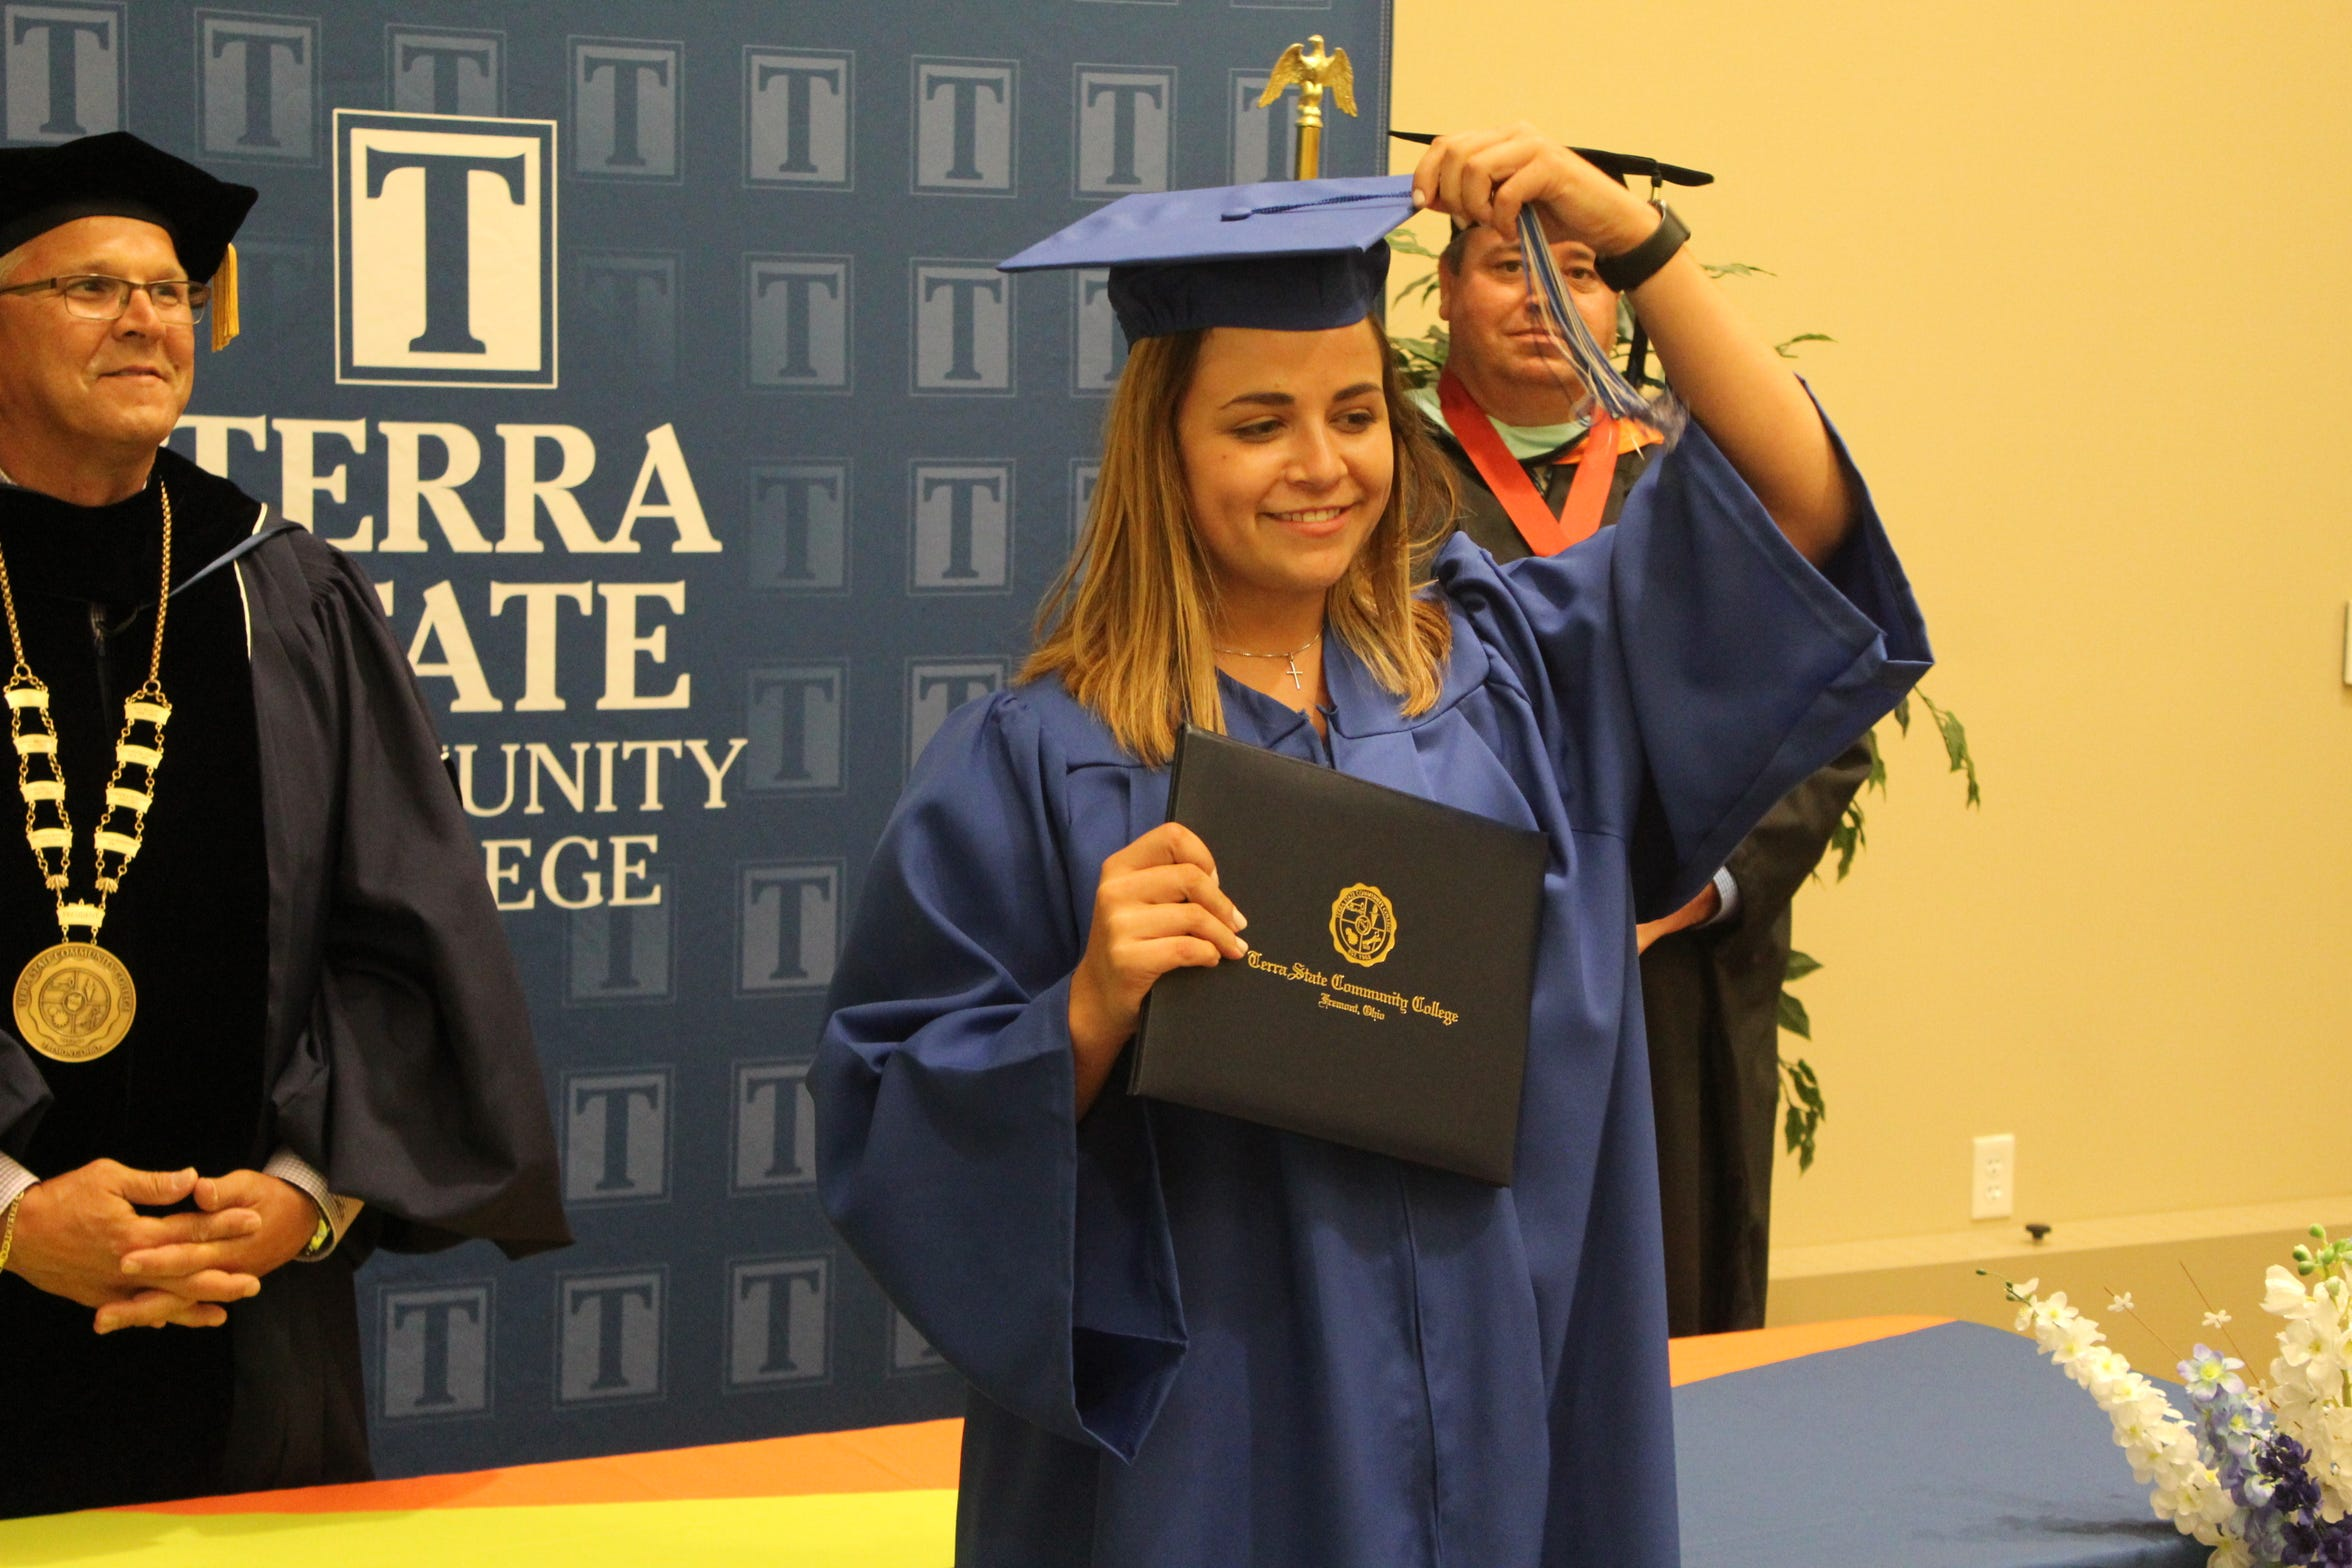 Leah Liskai of Woodville turns the tassel on her graduation cap after receiving her associate's degree in agribusiness management Thursday at Terra State Community College.